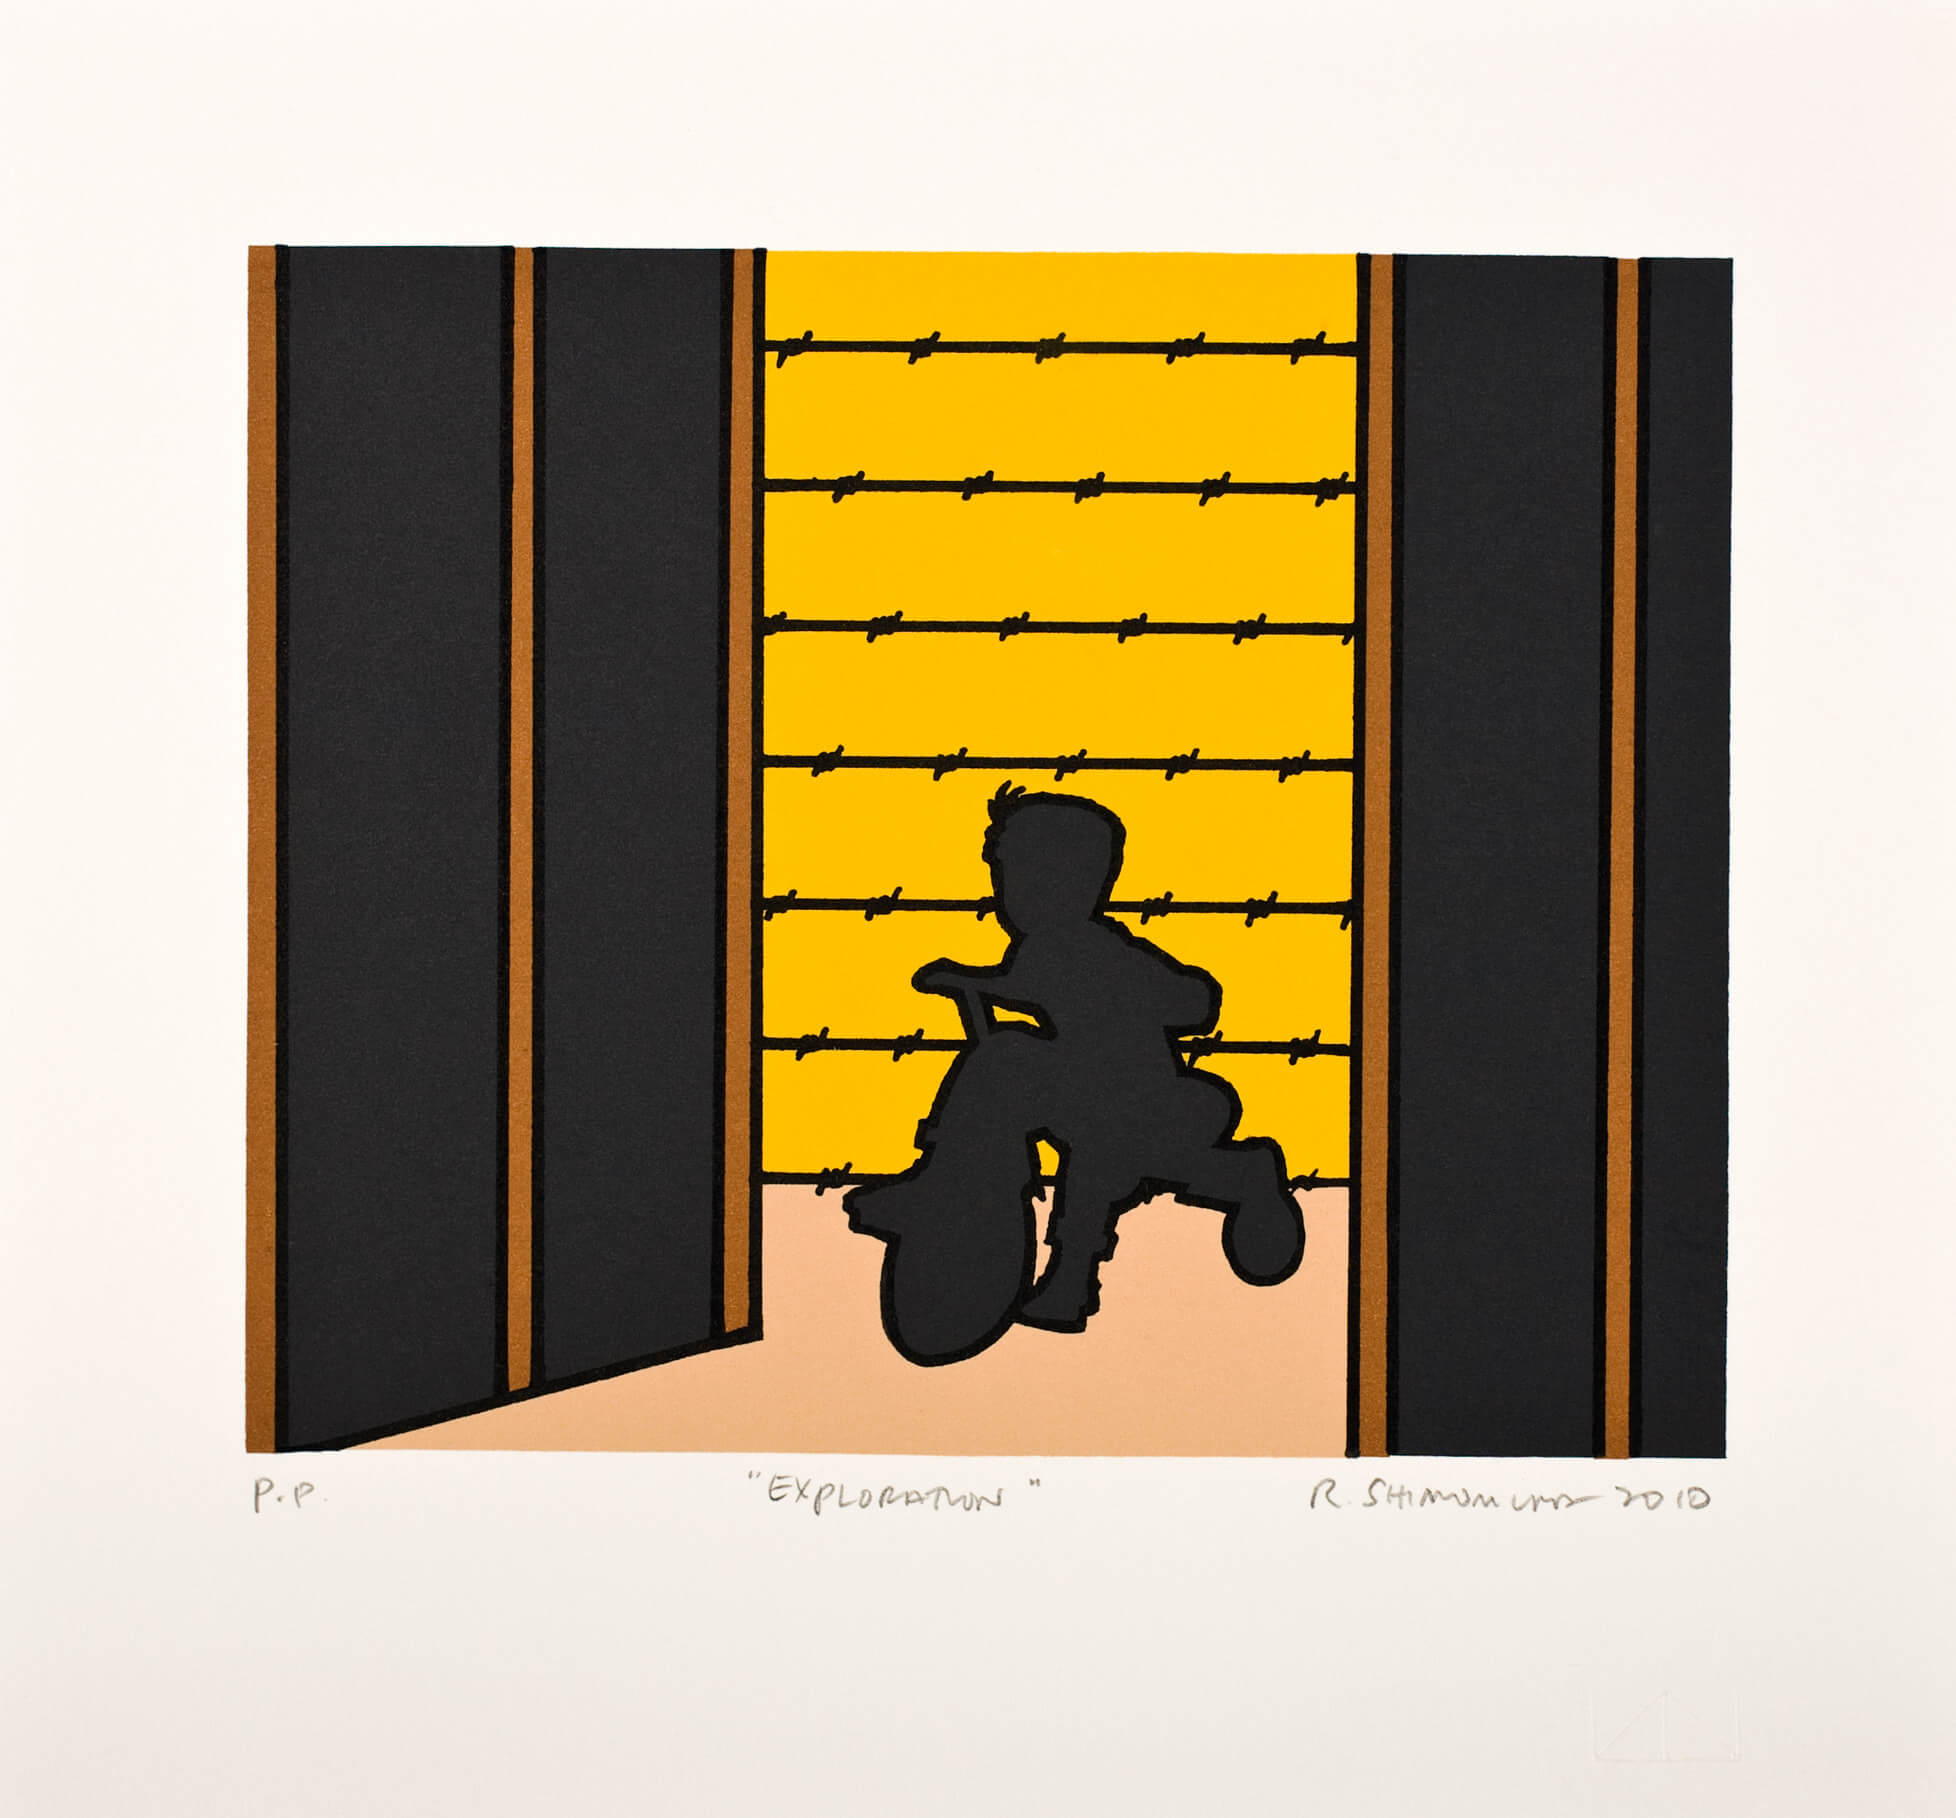 """""""Exploration"""" is a print in Minidoka Snapshots, a series by Roger Shimomura. (The Lawrence Lithocraphy Workshop/Roger Shimomura)"""